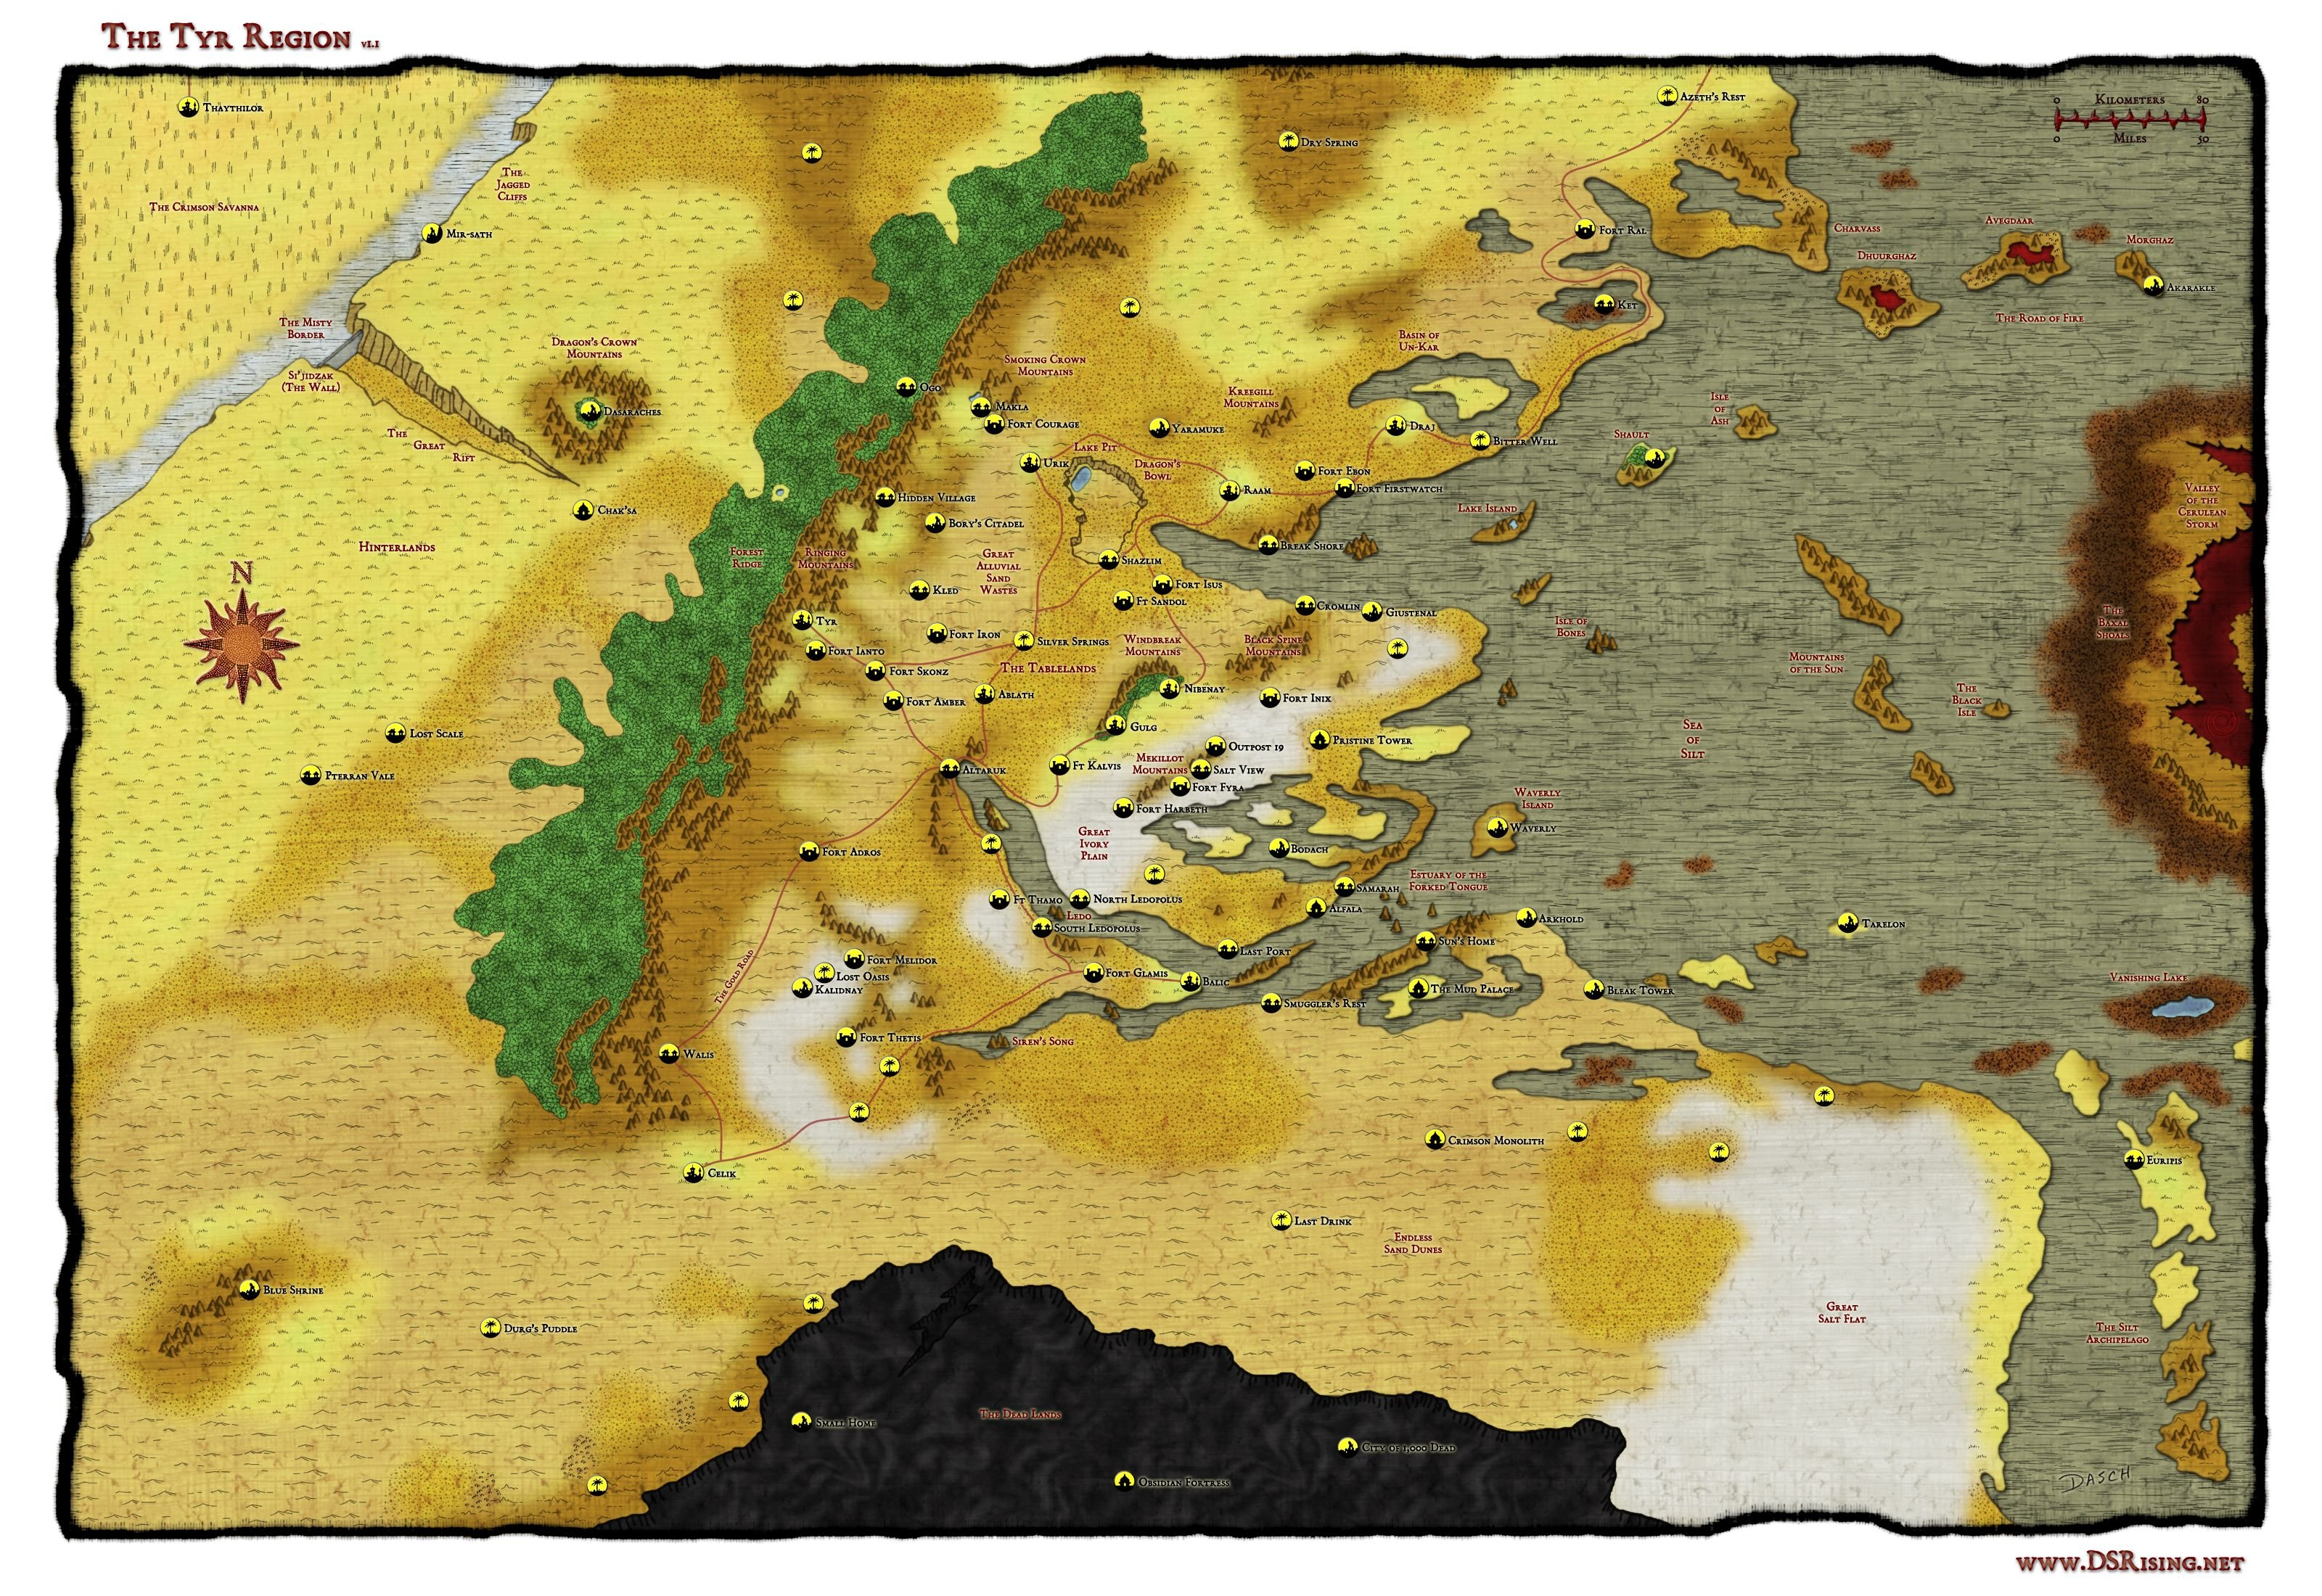 Athas World Map.Anybody Got A High Quality Tyr Region Map Image For Printing Darksun